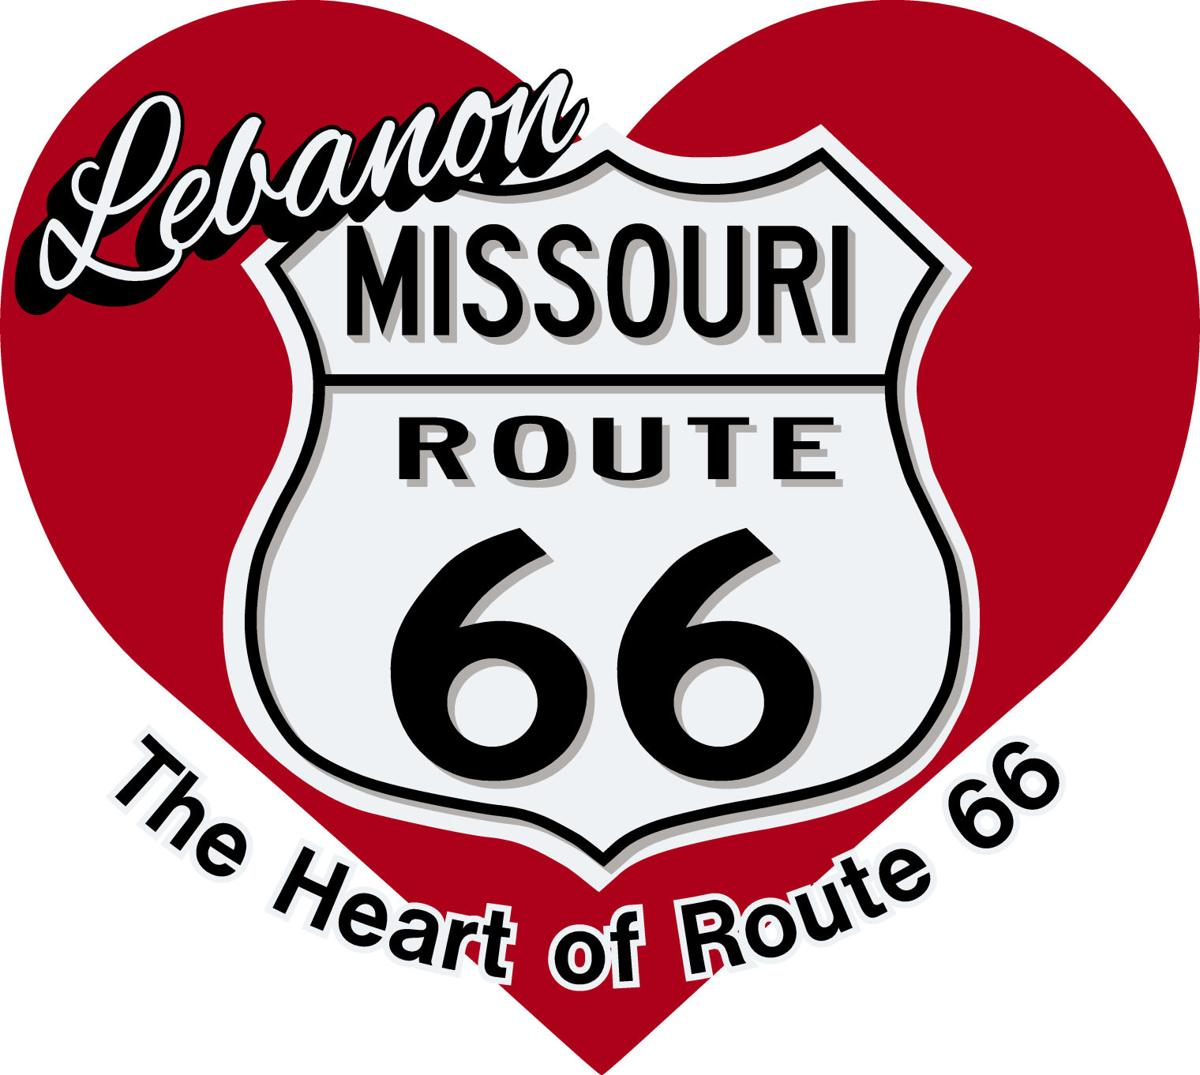 Heart of Route 66 logo